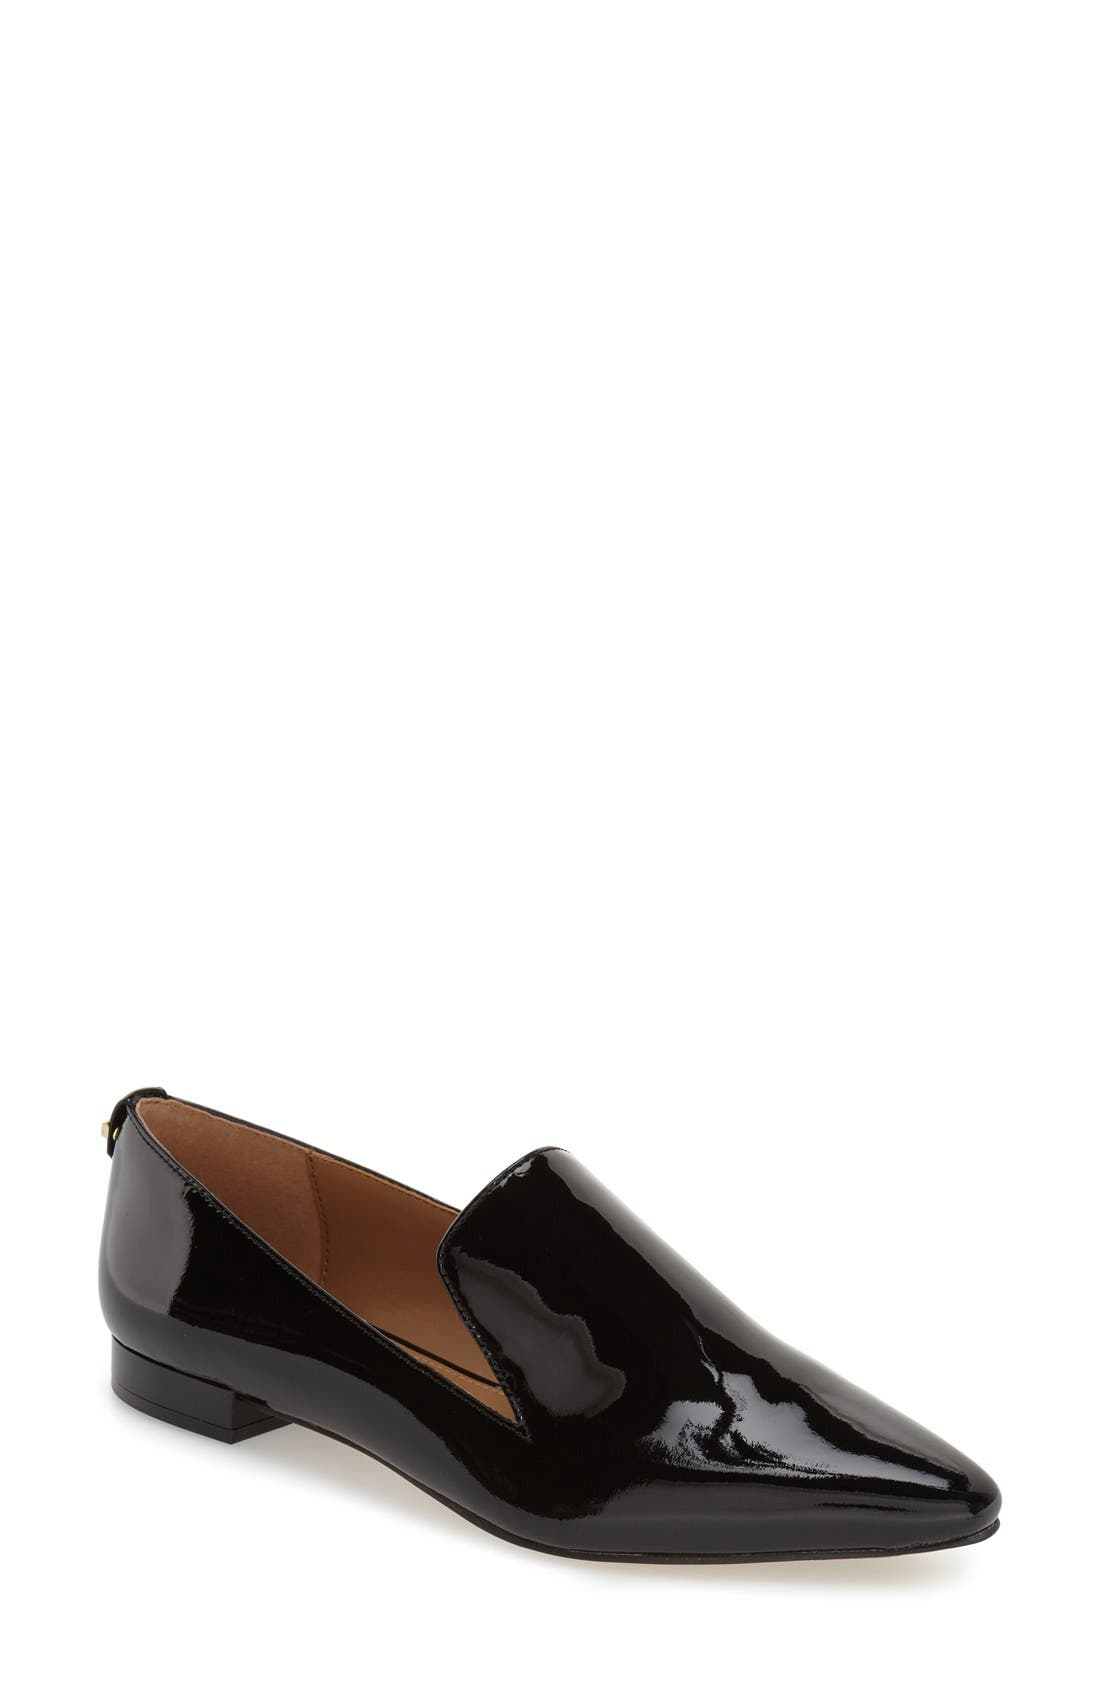 'Elin' Pointy Toe Loafer,                             Main thumbnail 1, color,                             BLACK PATENT